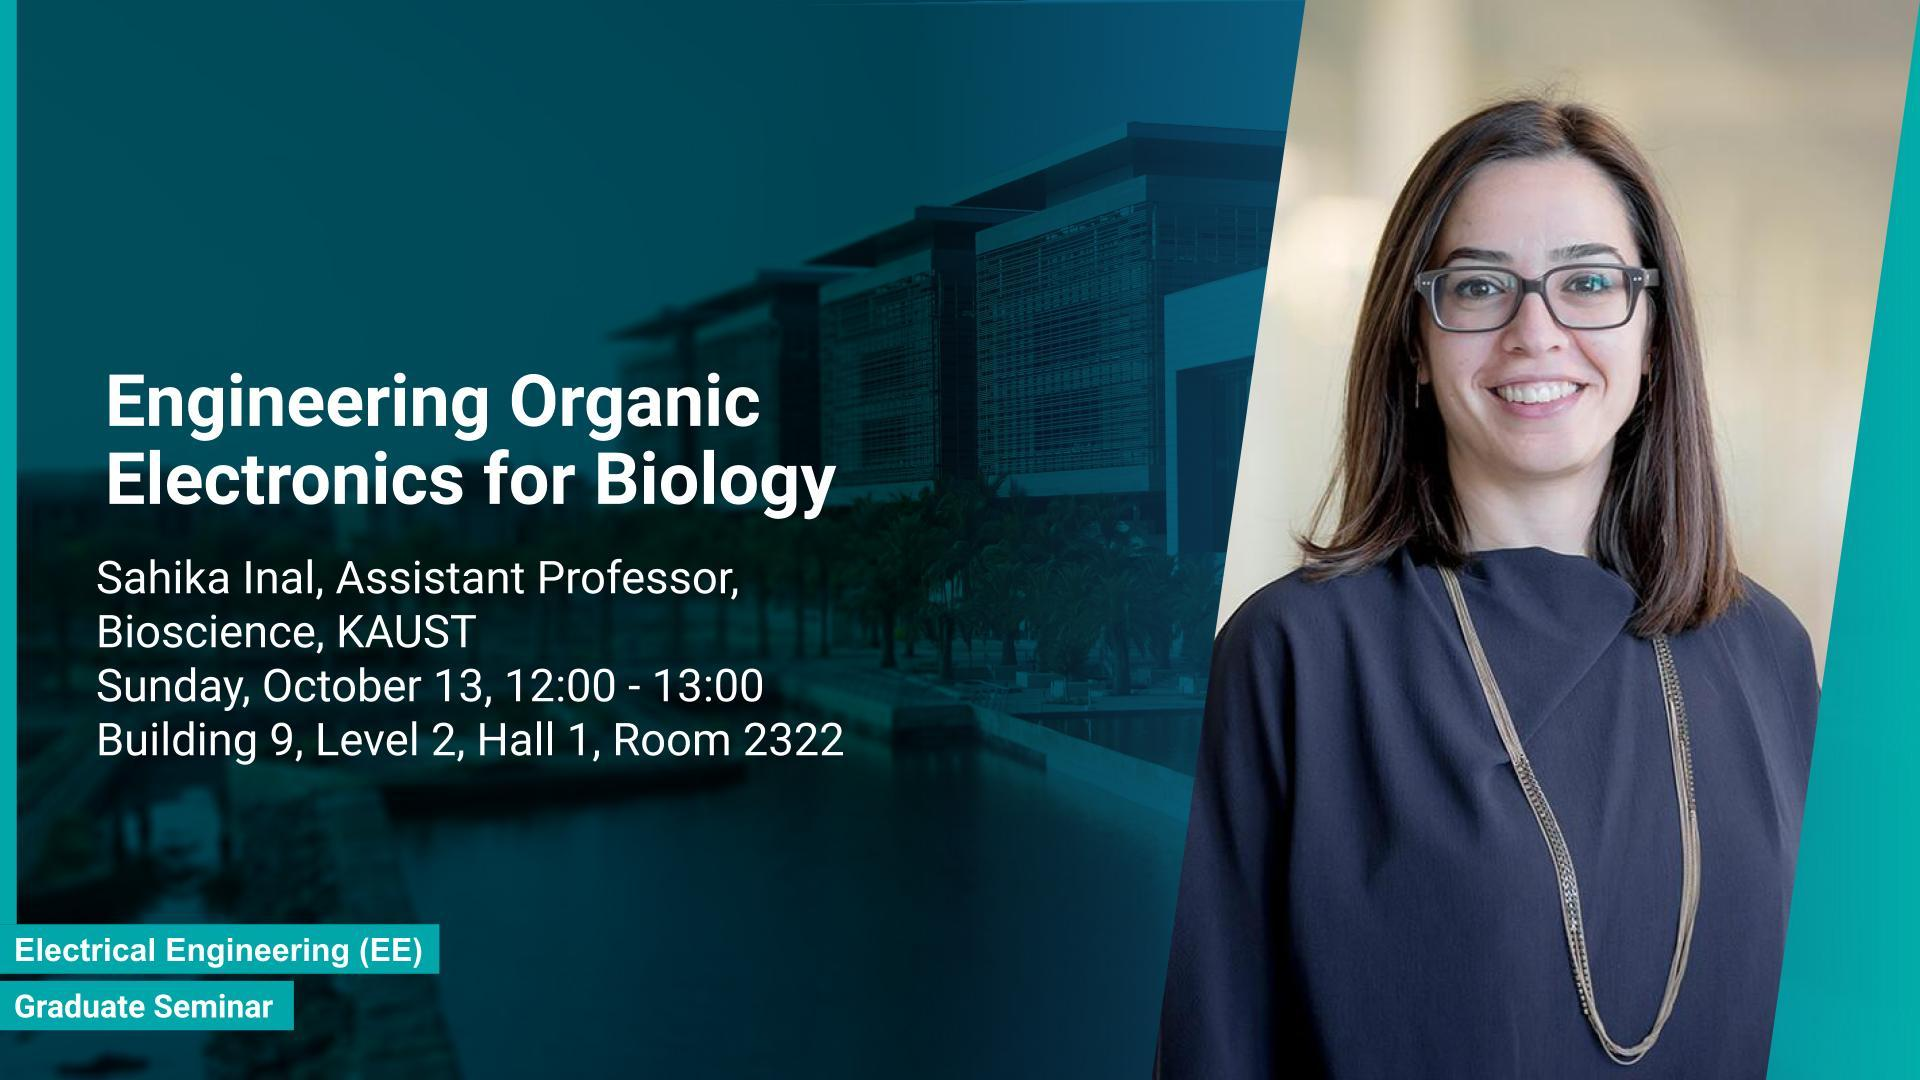 KAUST BESE B Graduate Seminar Sahika Inal Engineering Organic Electronics for Biology